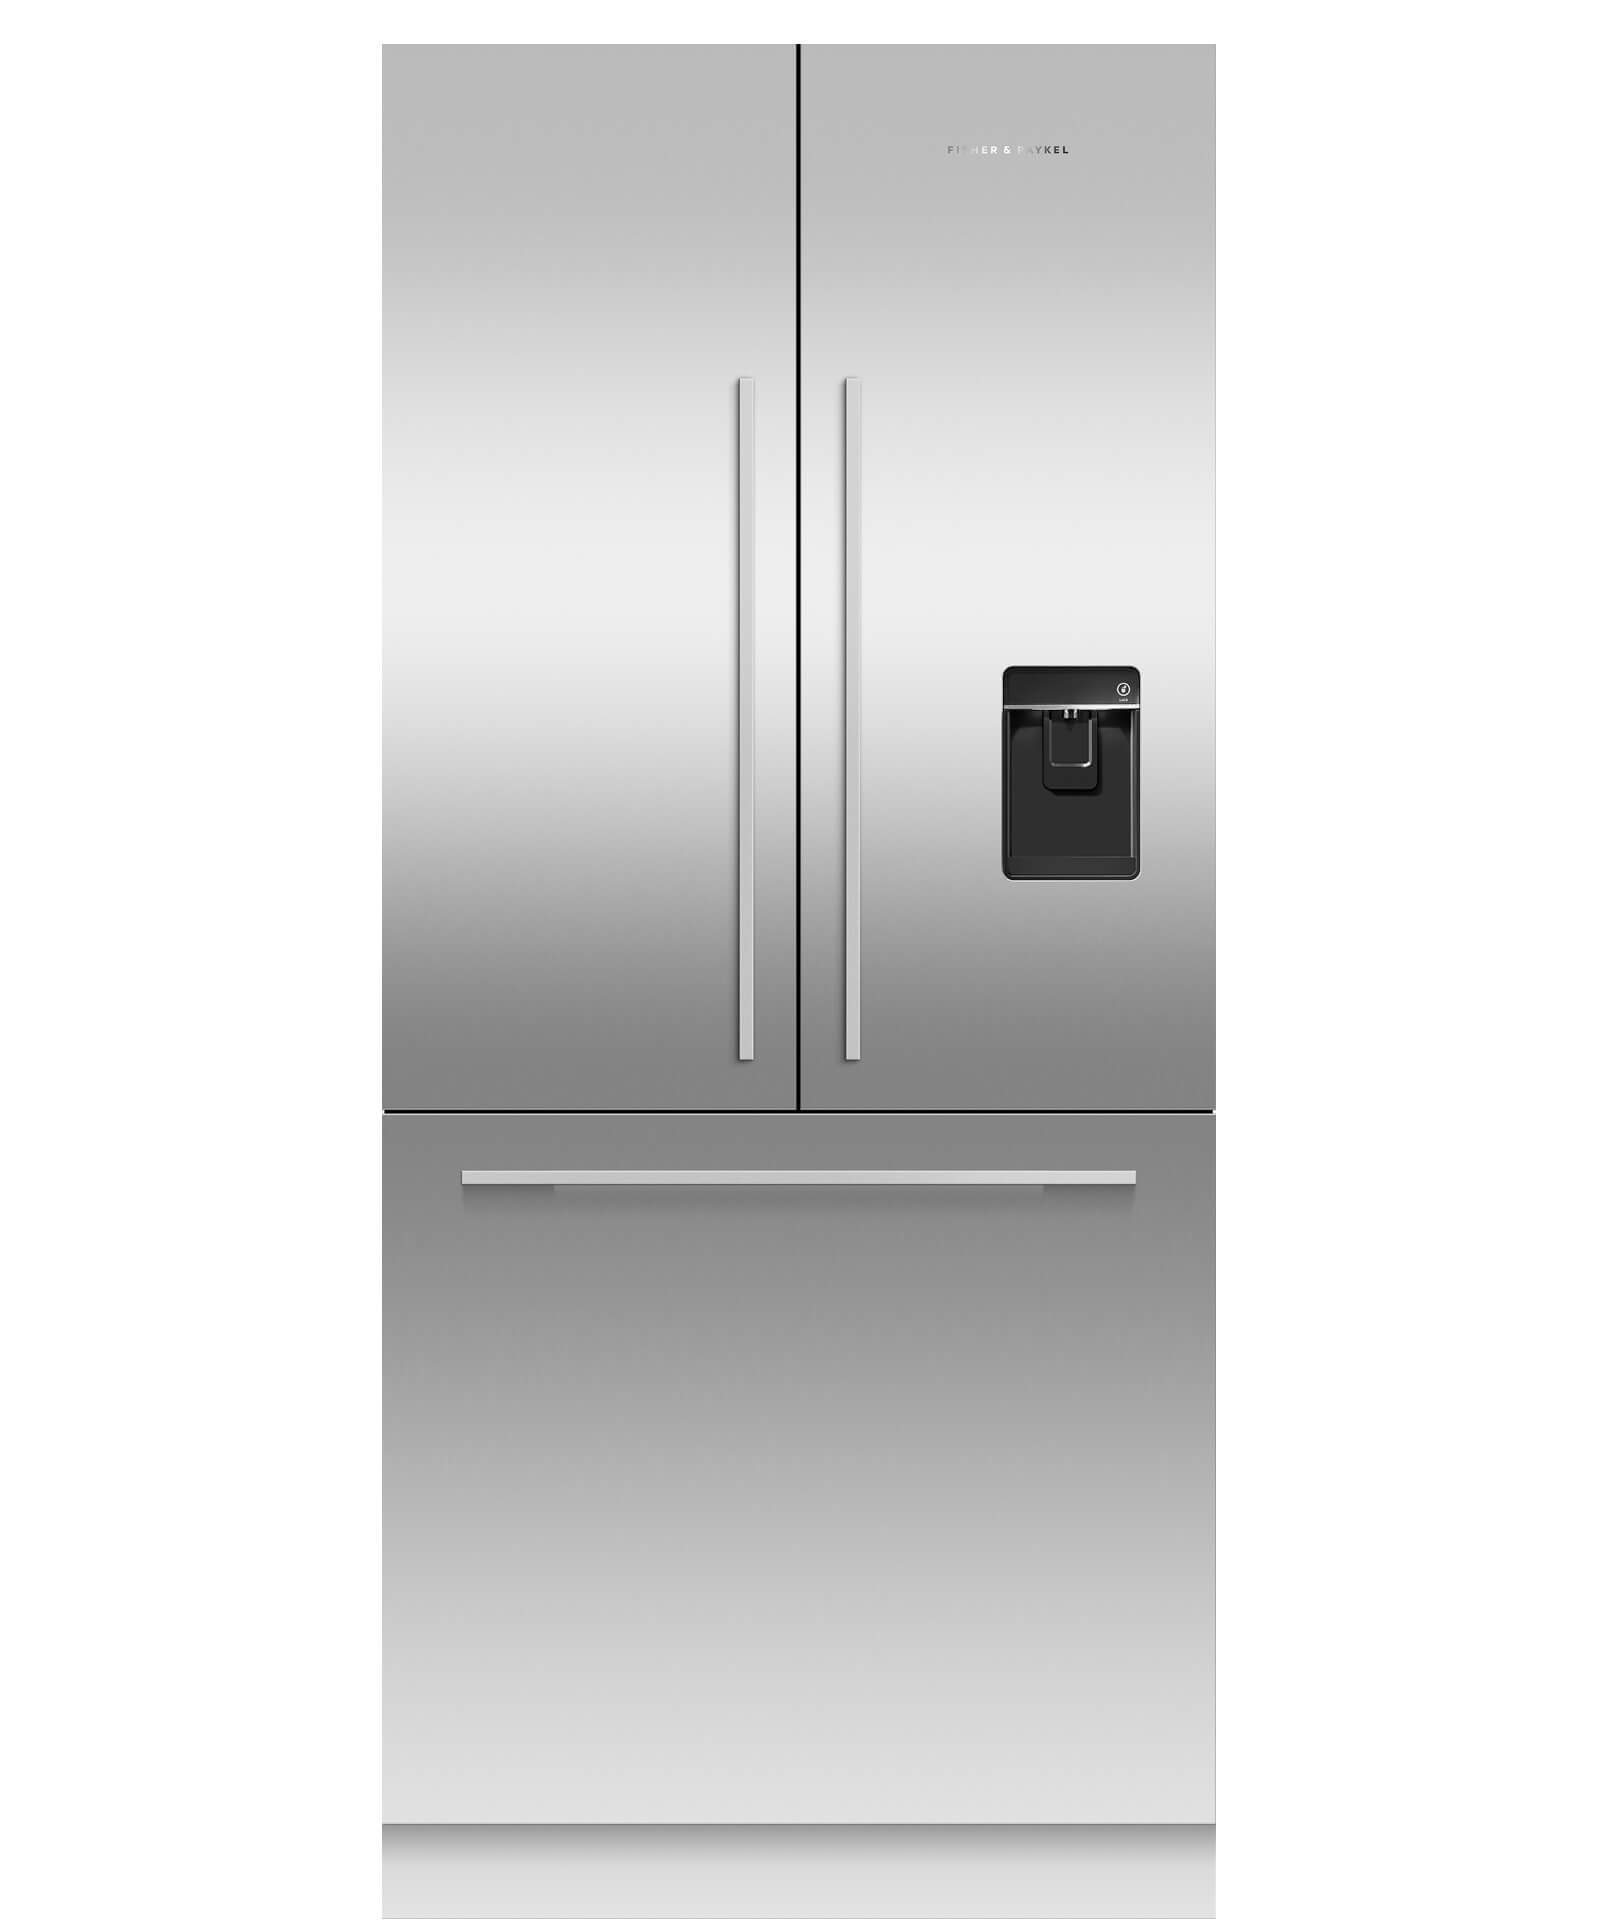 Rs36a80u1 Activesmart Refrigerator 36 French Door Integrated With Ice Water 80